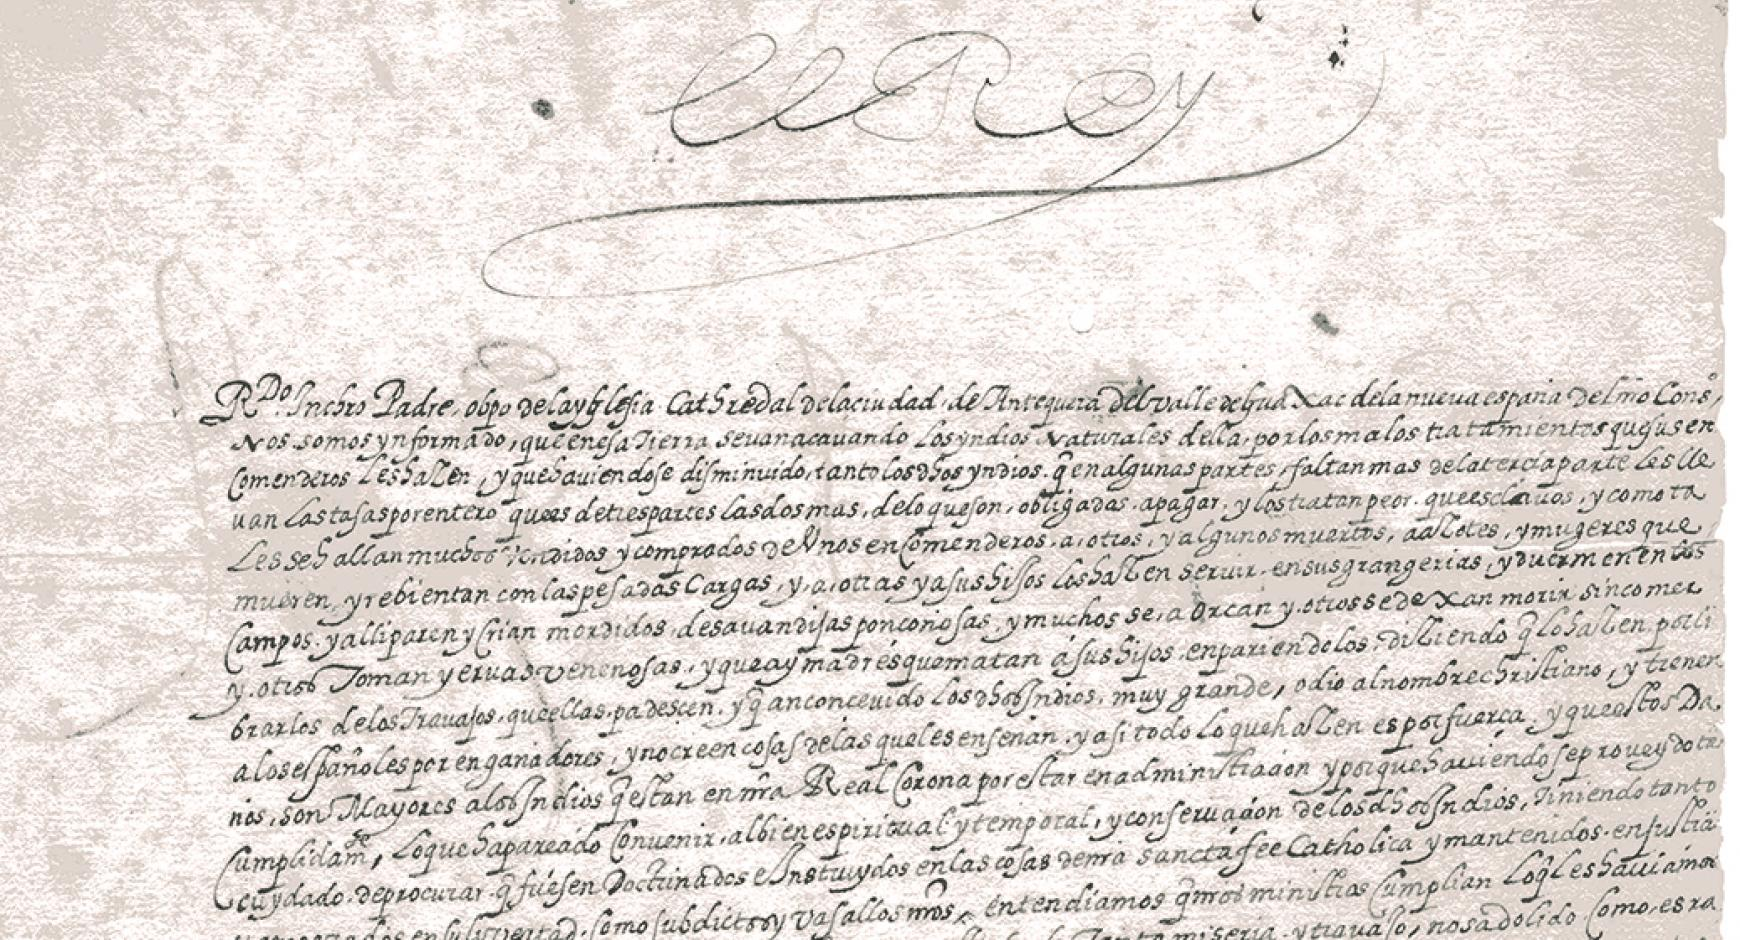 detail of scanned document in spanish